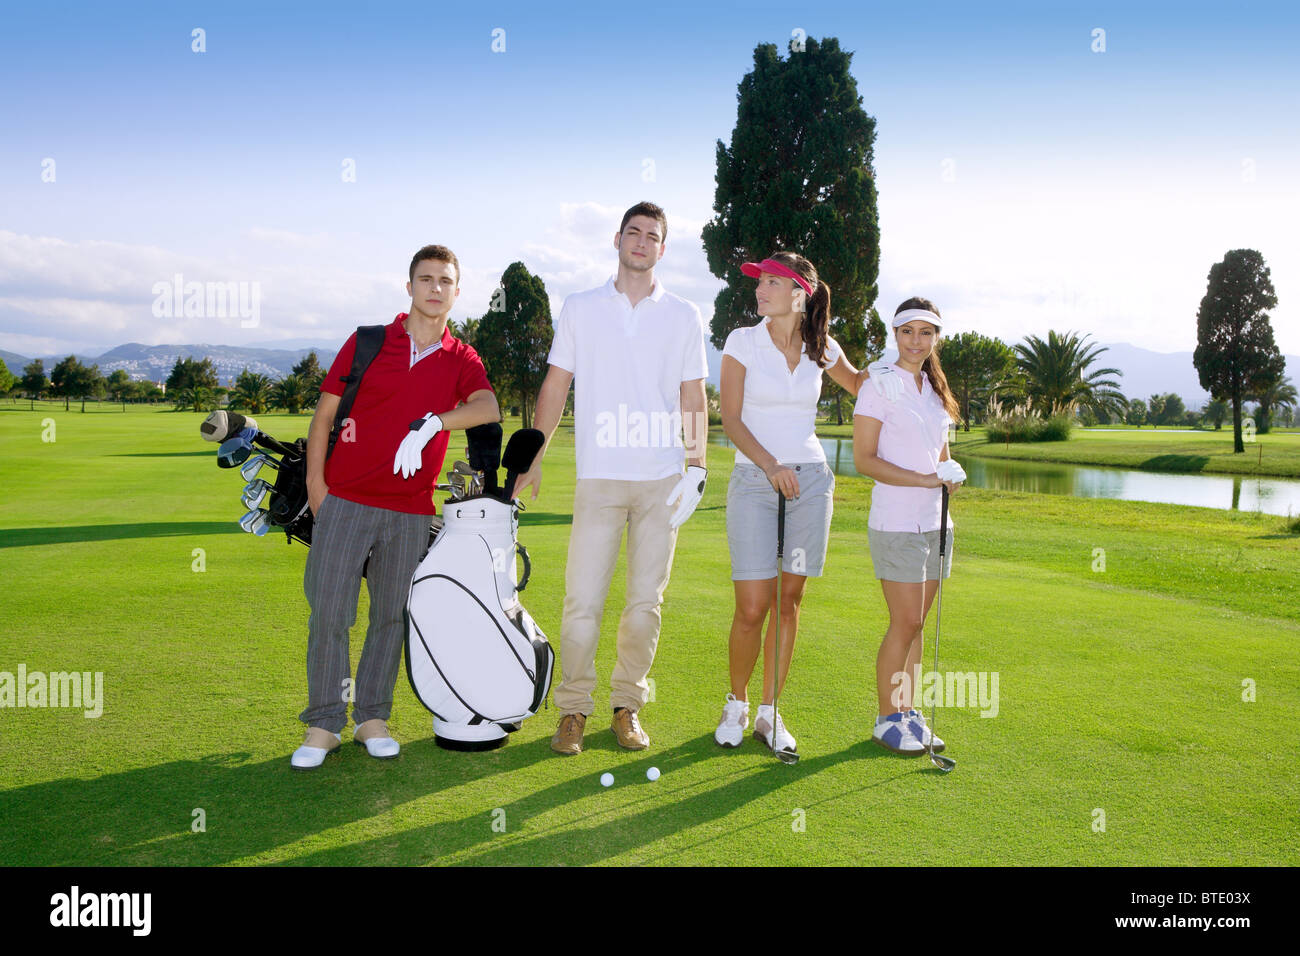 Golf course people group young players team grass field - Stock Image